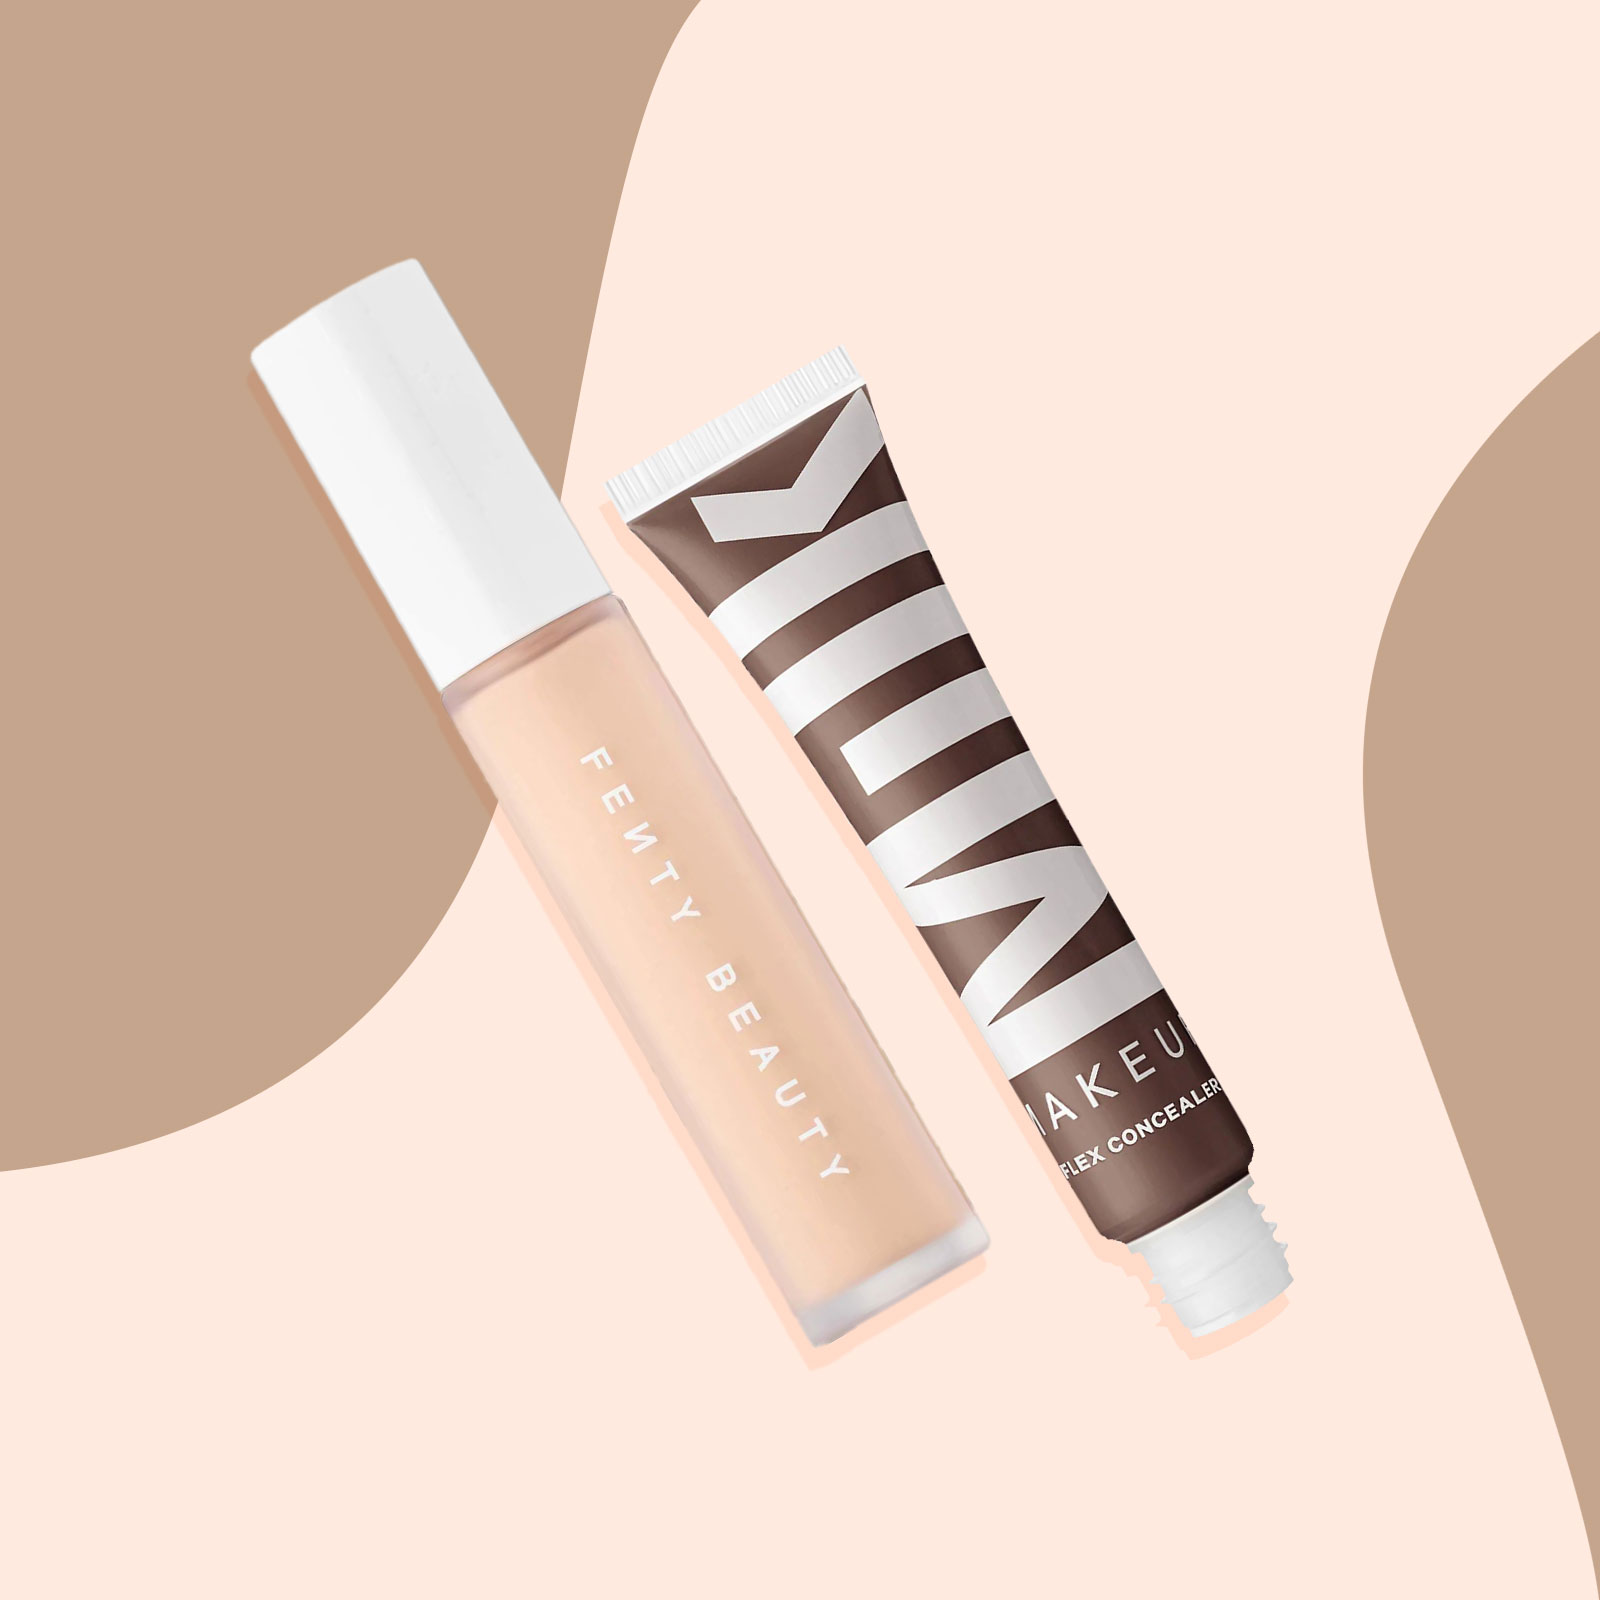 The 10 Best Concealers for Extremely Dry Skin